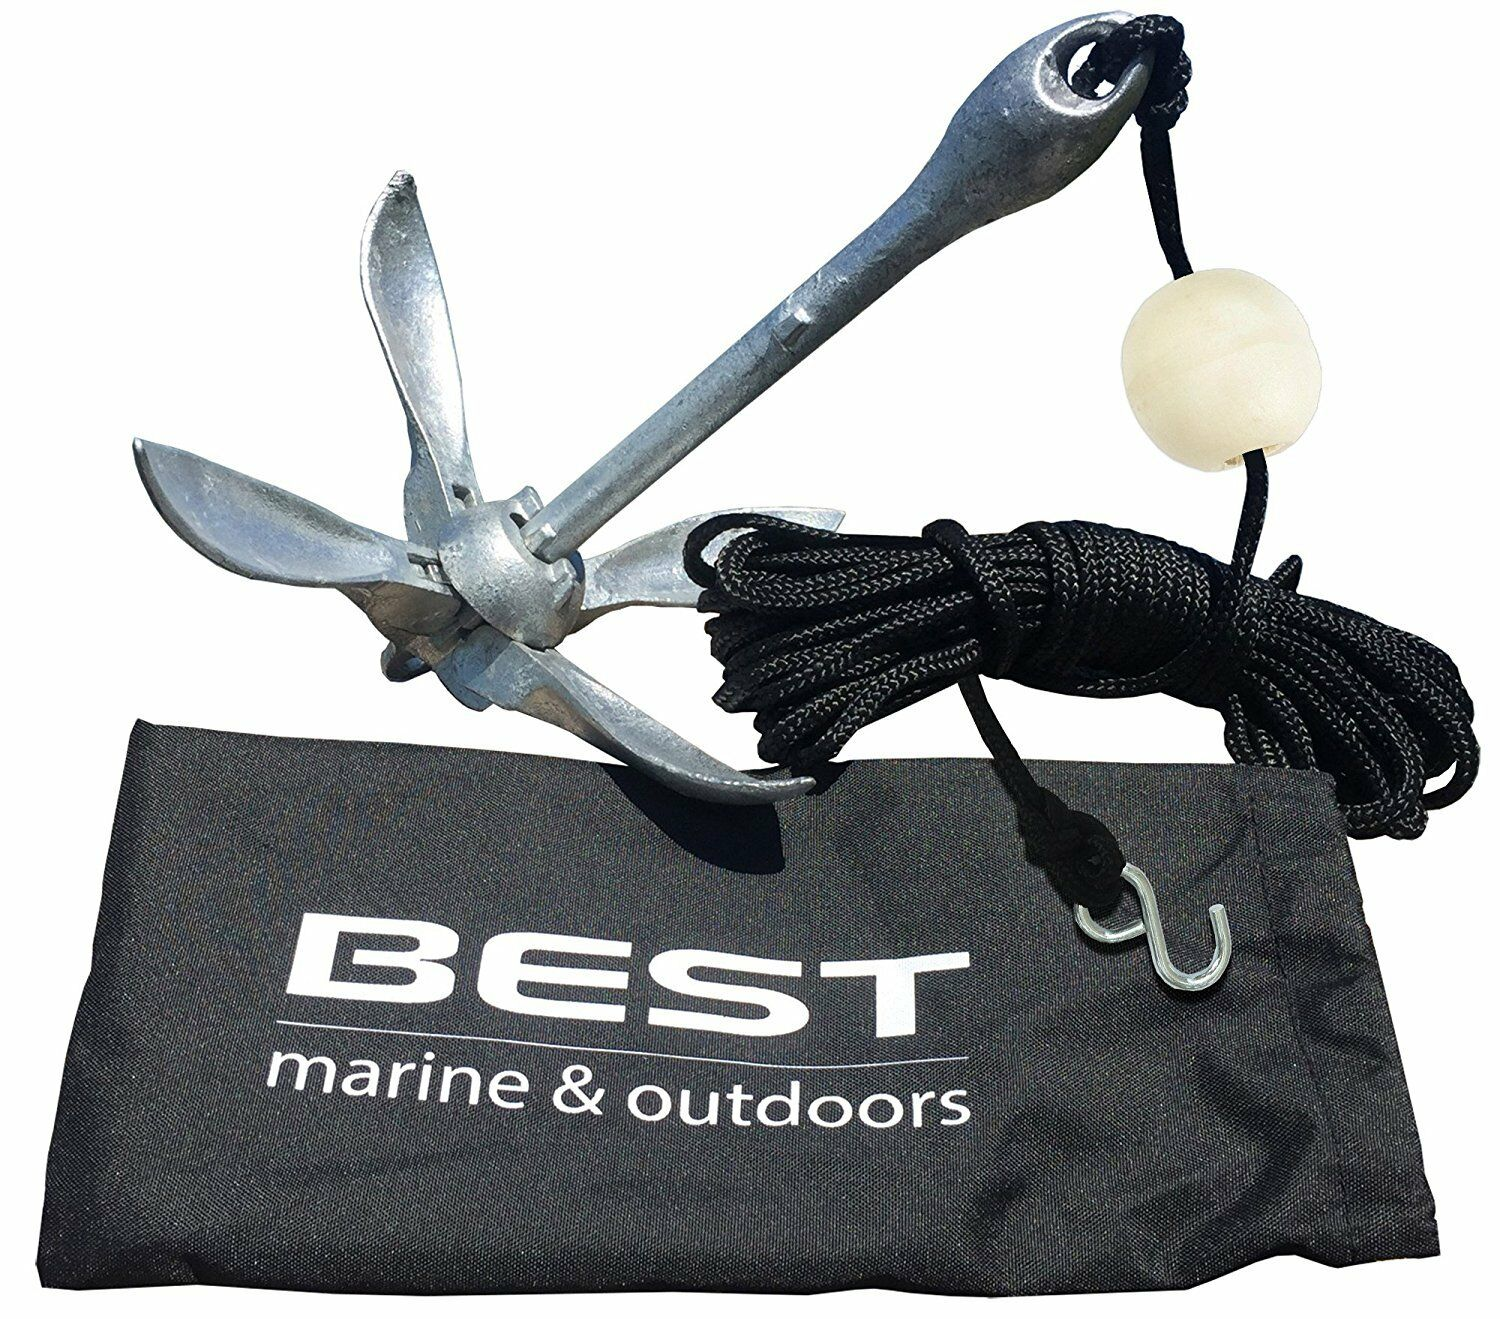 BEST Kayak Anchor for Canoes, Jet Skis, Dinghy, SUP & Small Boats - 3.5lbs Iron